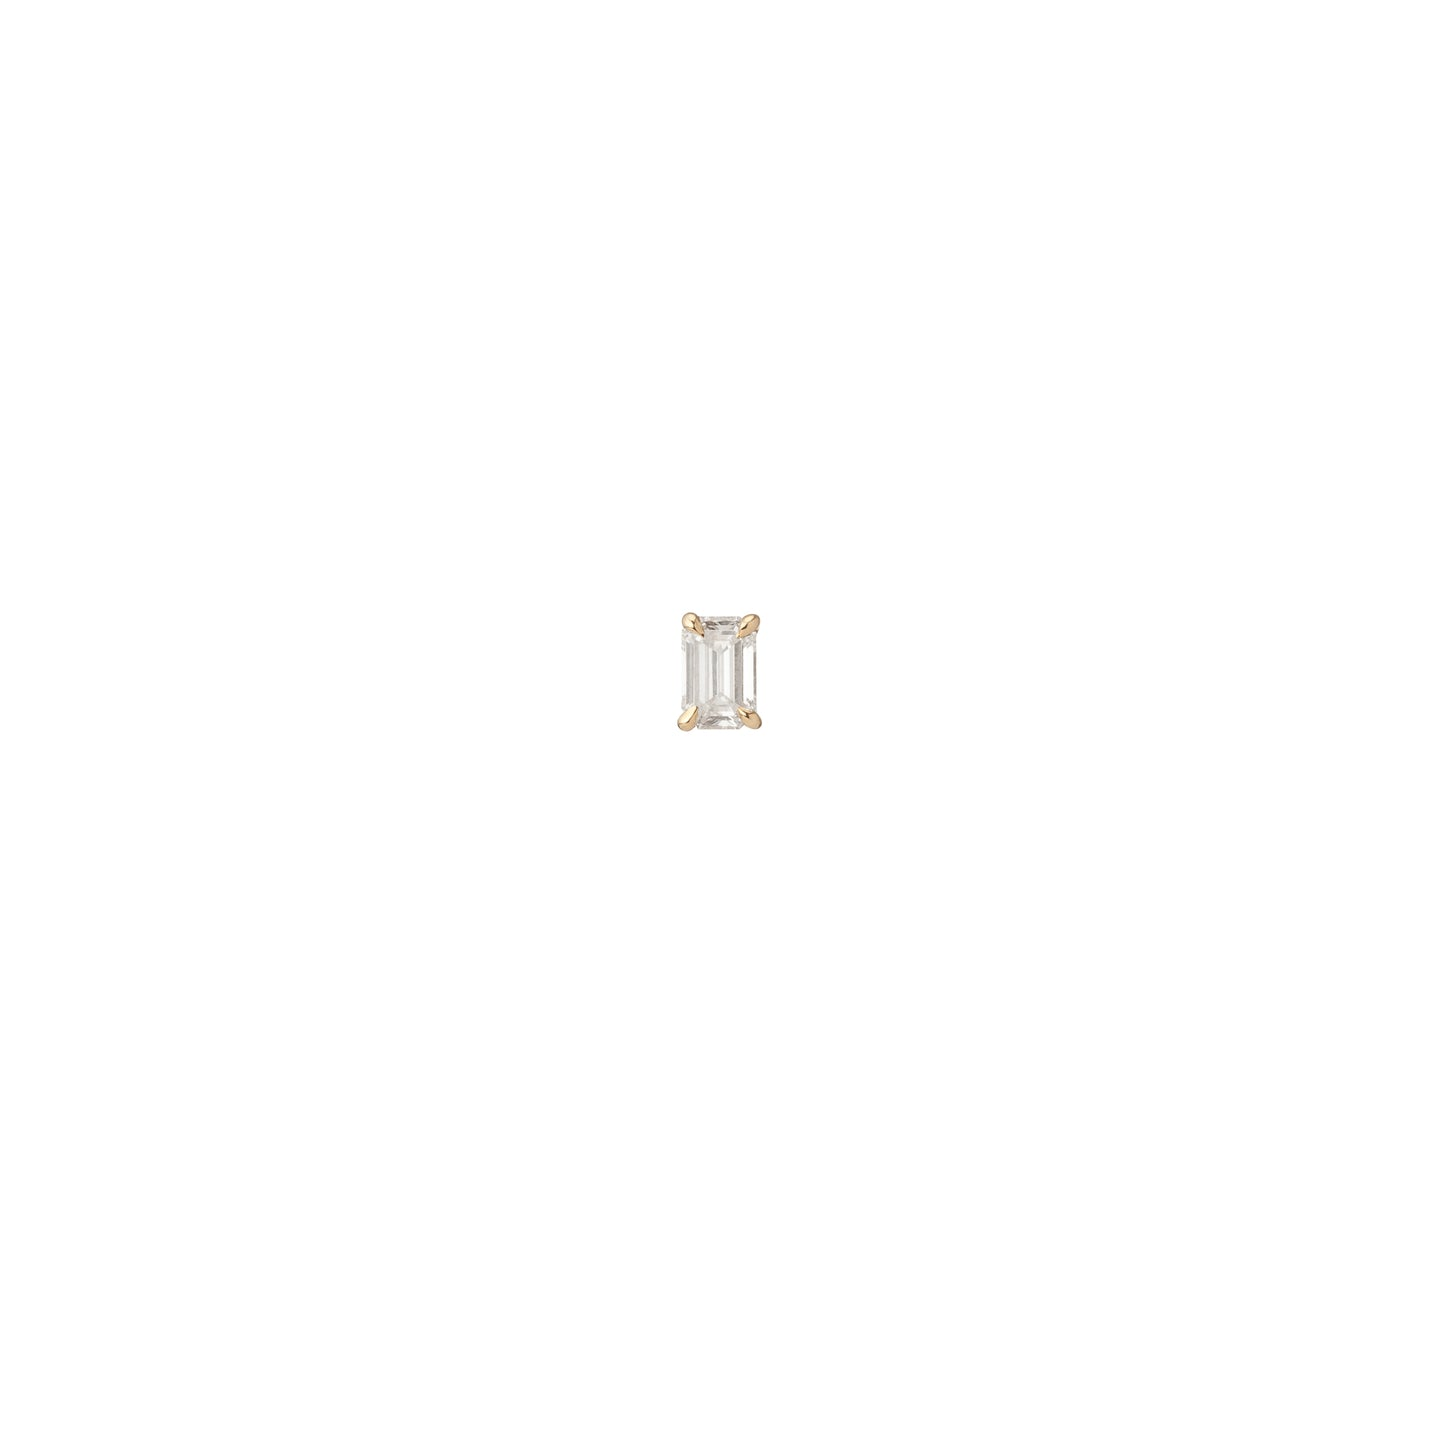 18K Yellow Gold .24CT Emerald Cut Lab Grown Diamond Stud